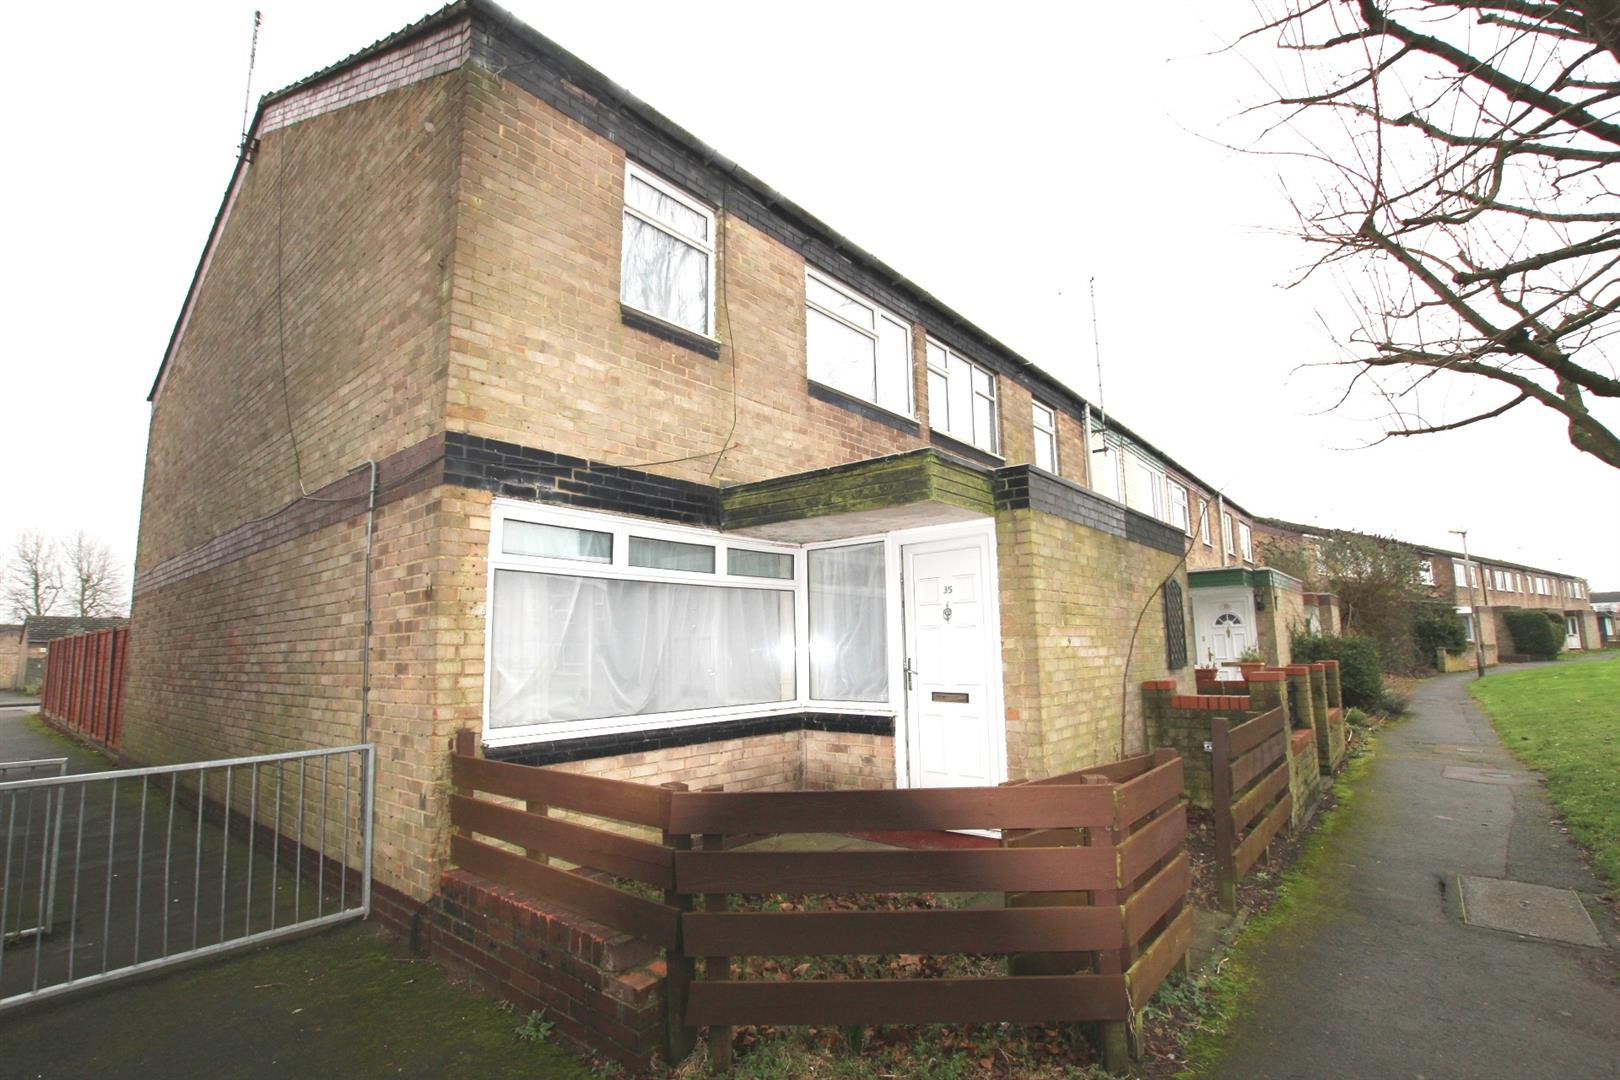 3 Bedrooms House for rent in Trident Drive, Houghton Regis, Dunstable